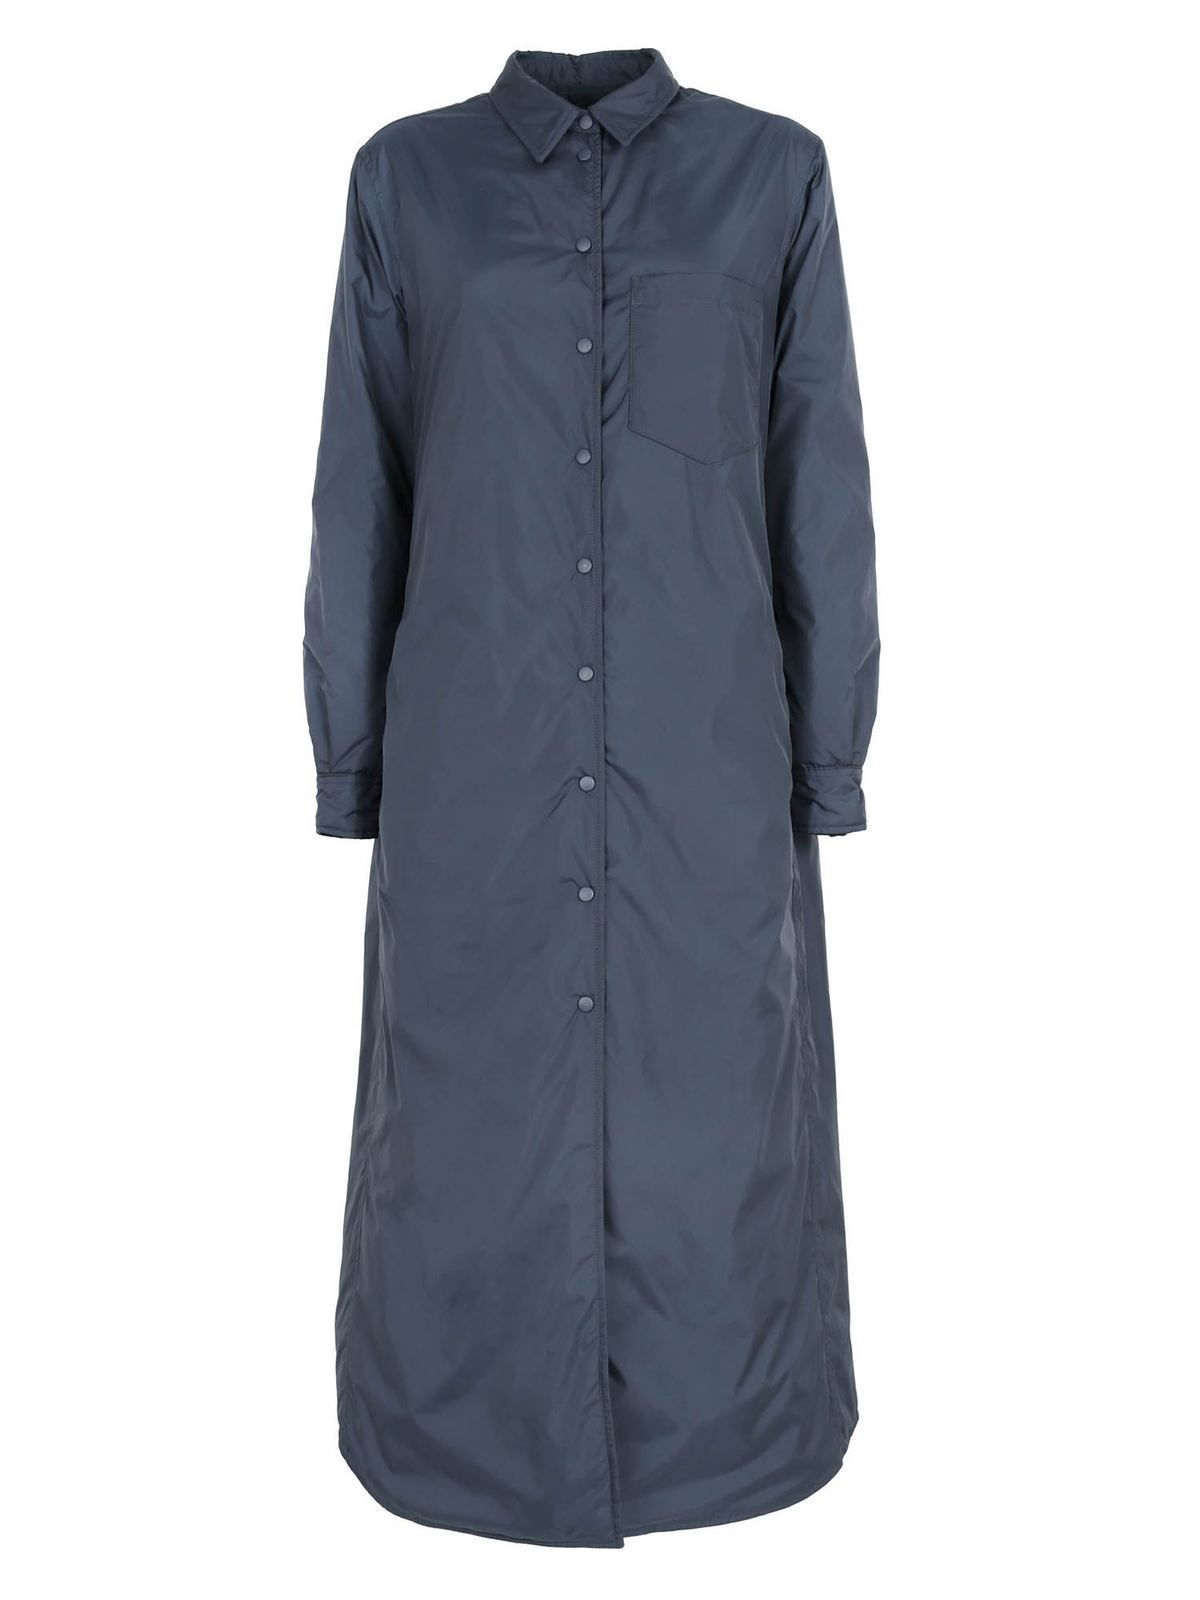 Aspesi PADDED MAXI SHIRT IN BLUE